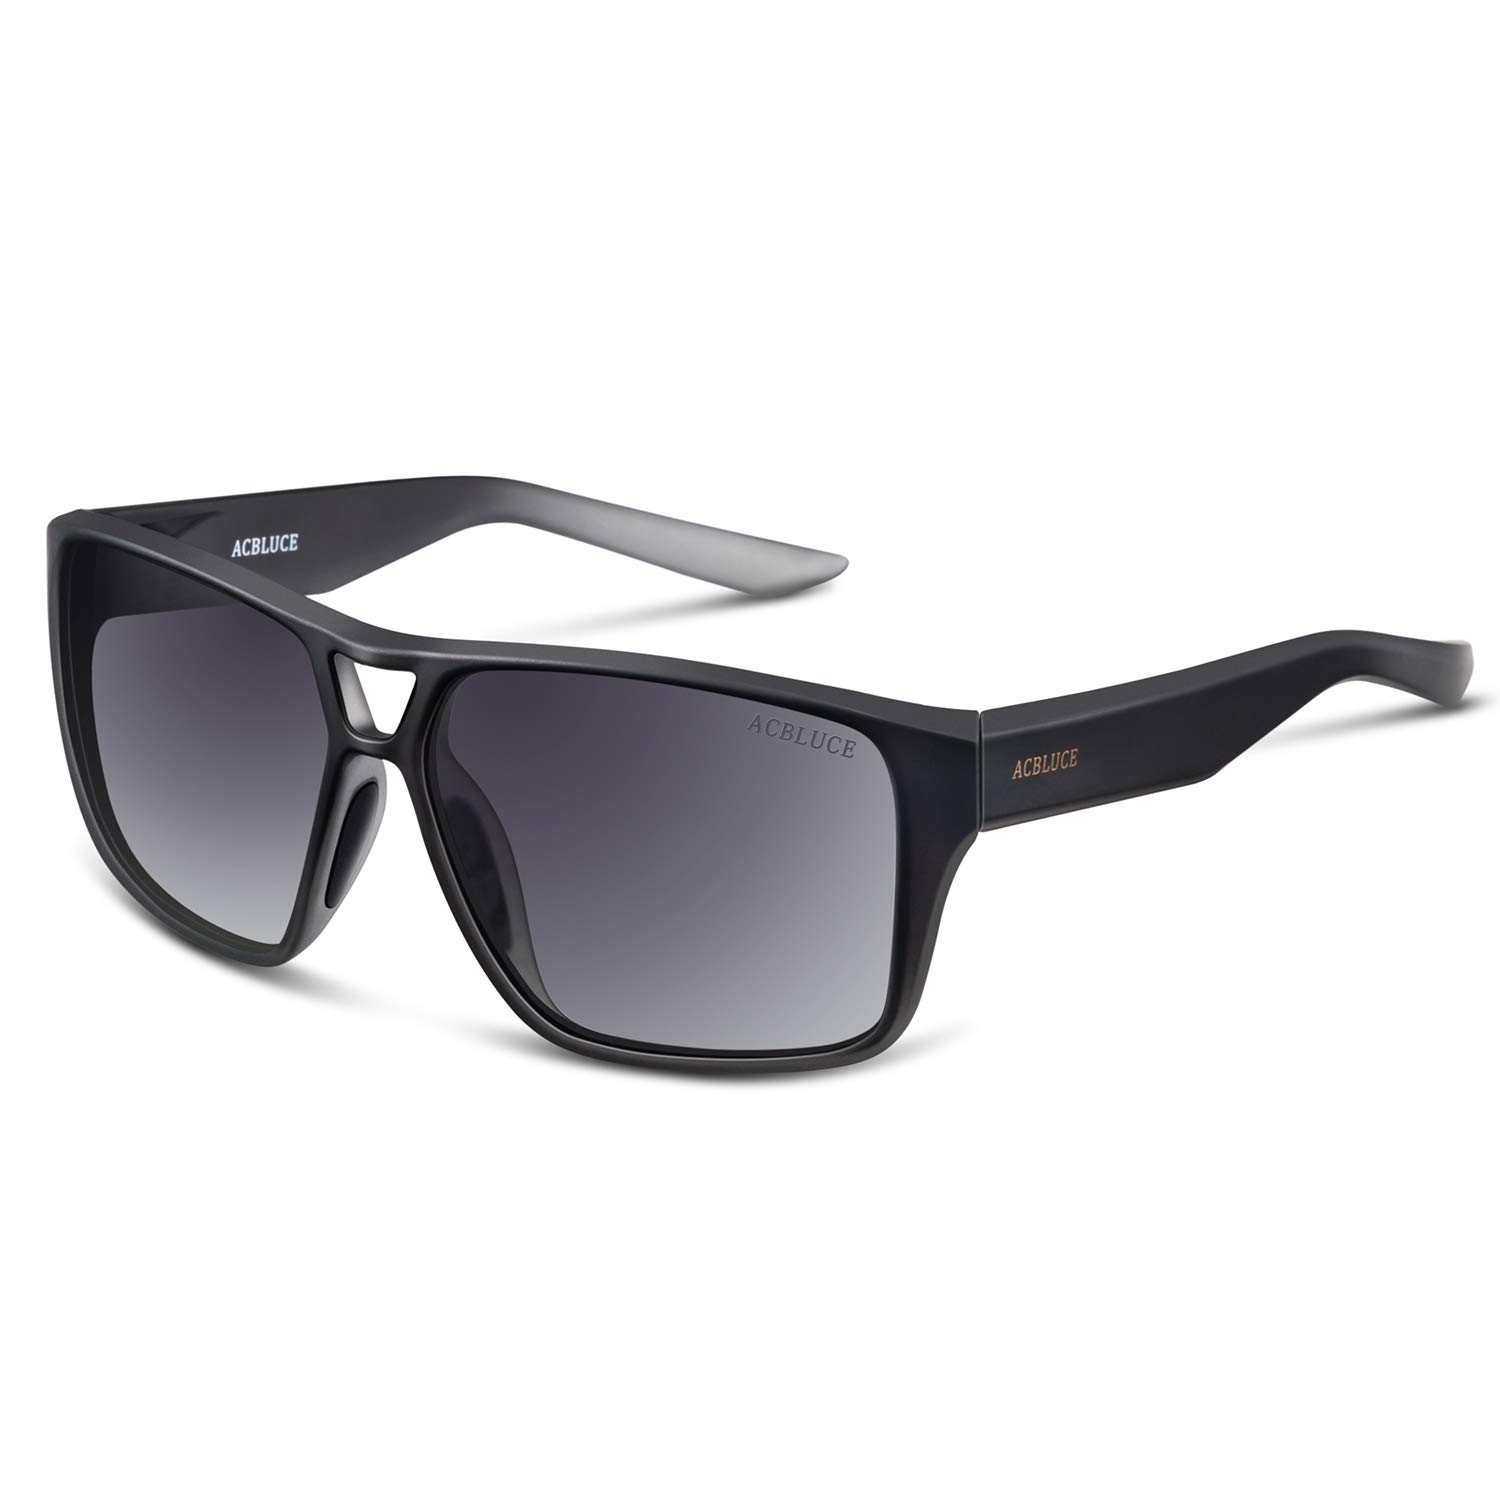 ACBLUCE Polarized Sports Sunglasses for Men Women UV Protection TR90 for Baseball Driving Running Cycling Fishing Golf